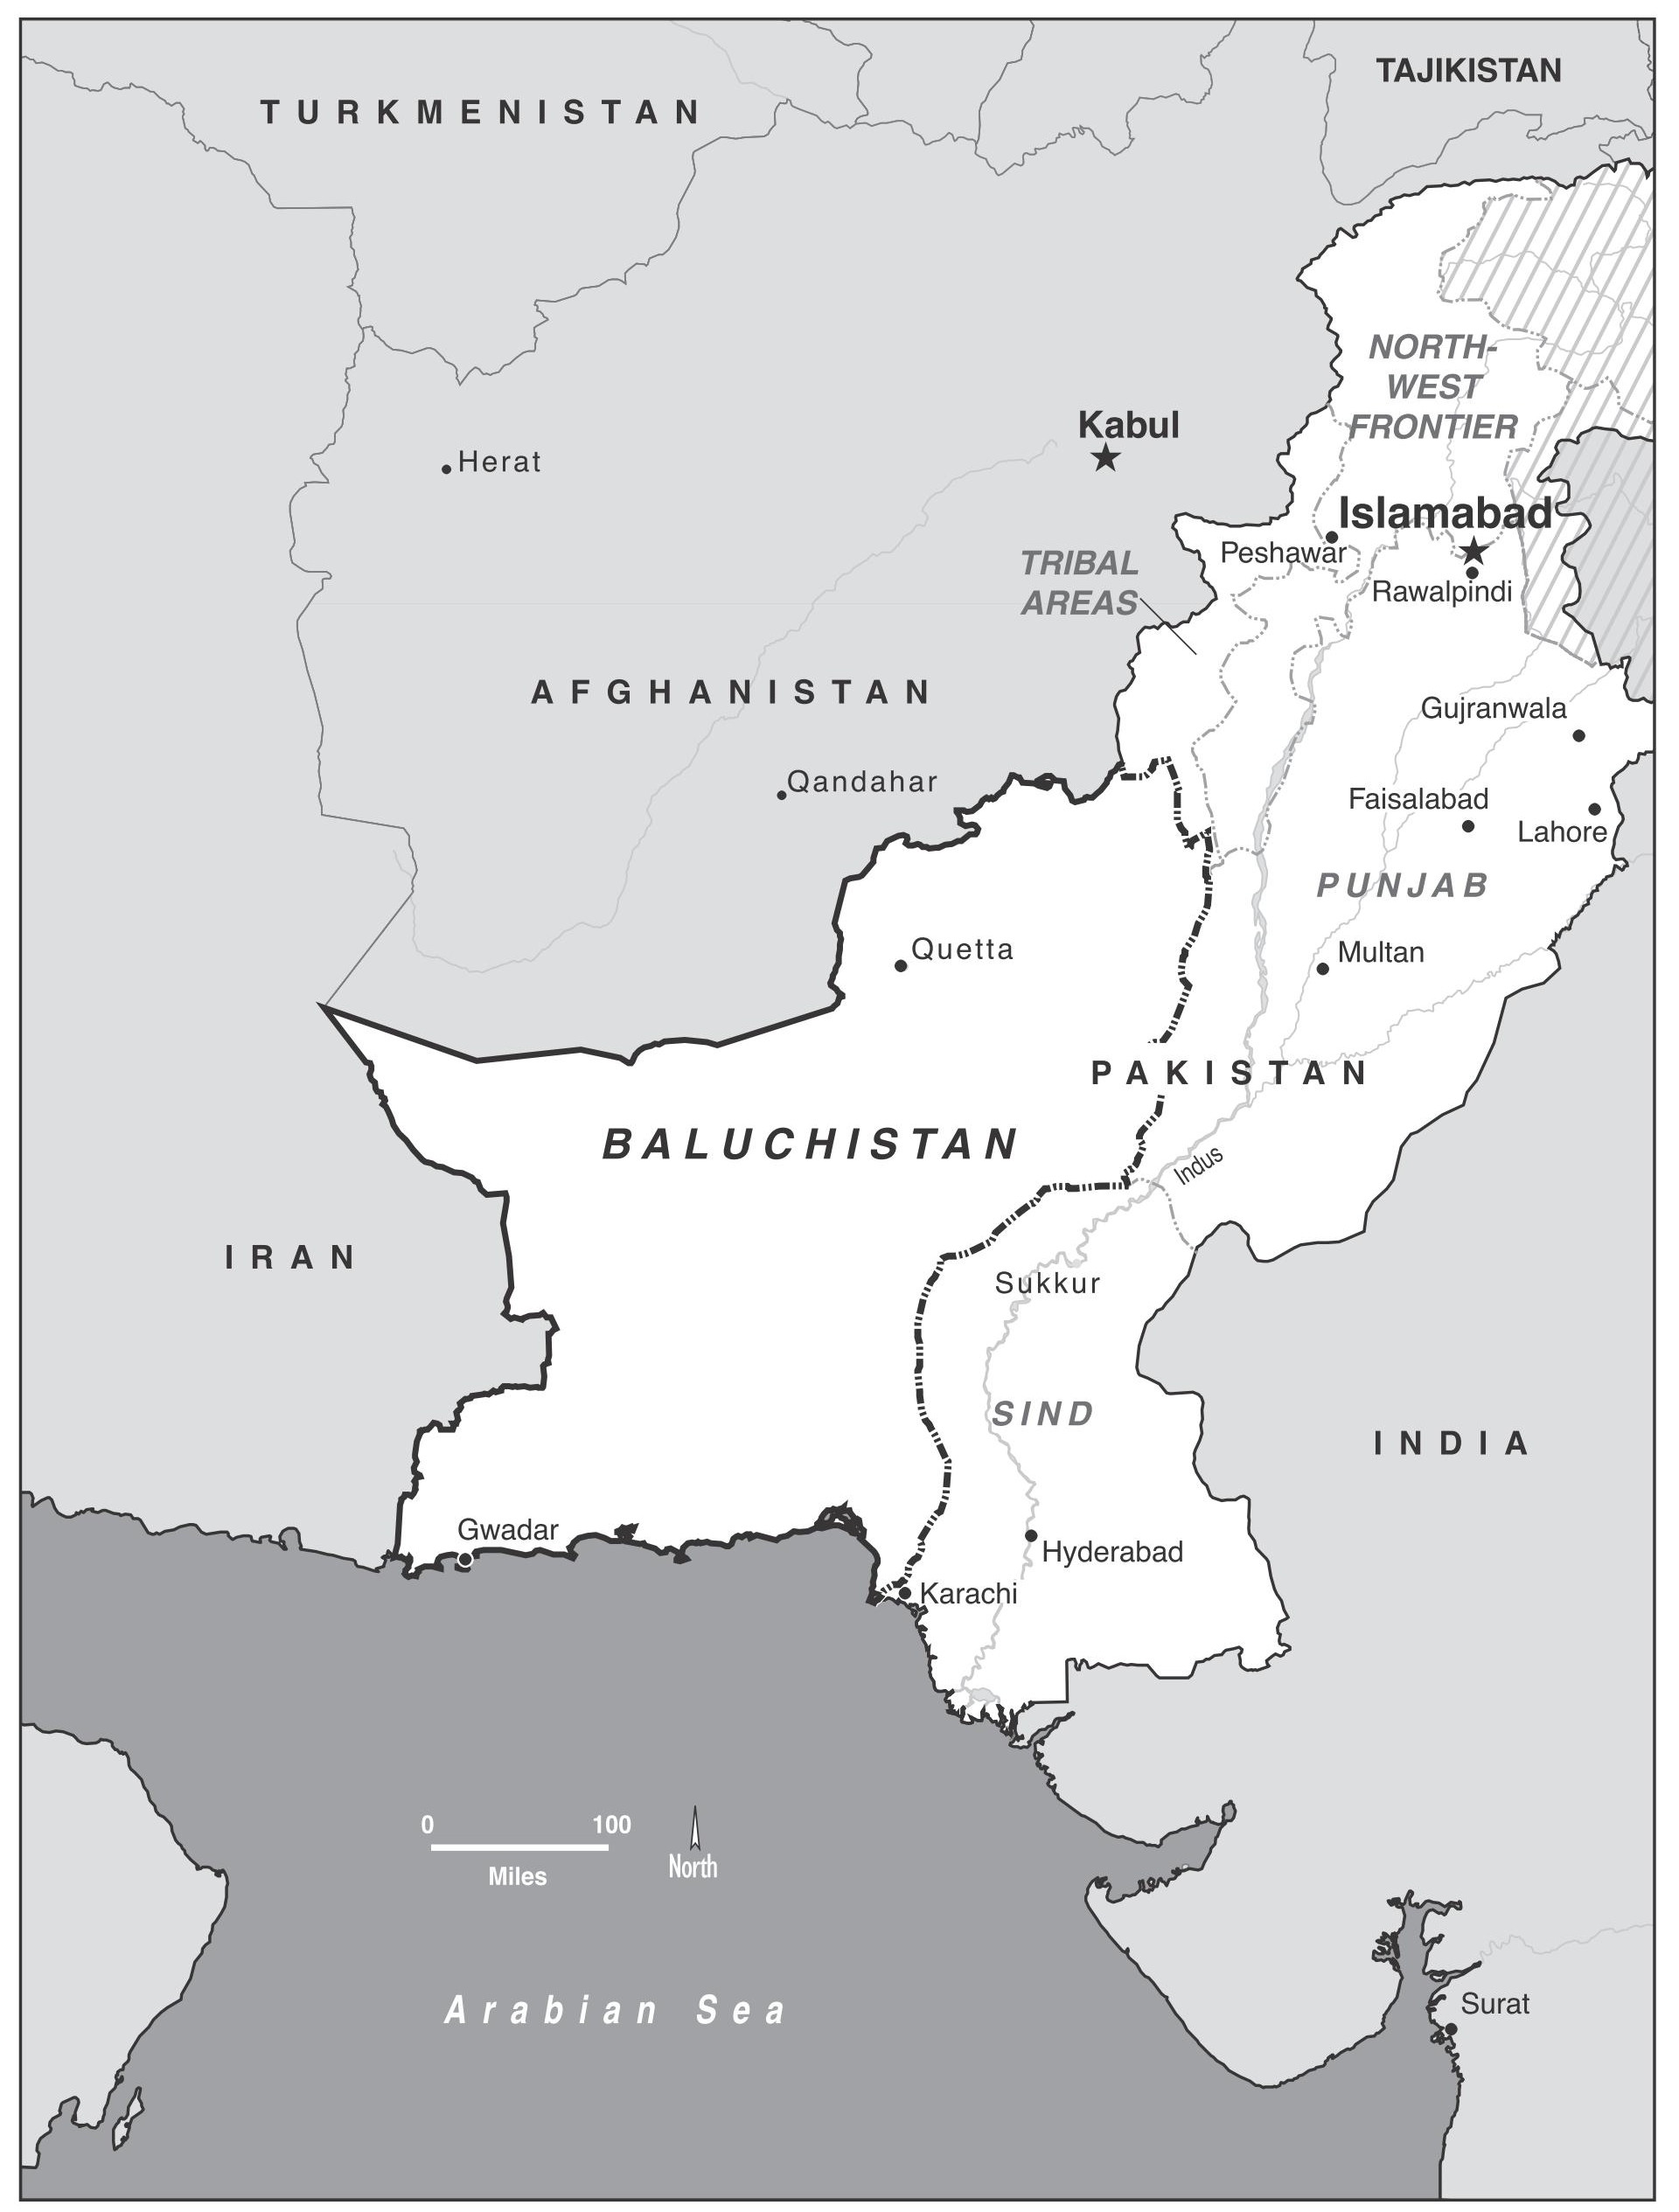 "Pipelines, ports, and petroleum: destabilizing and carving off a ""free Baluchistan"" would hobble the development of 4 nations – Pakistan, Iran, India, and China. With Pakistan's plans to use the Baluchi port of Gwadar to give Central Asian countries access to the sea facing a failure, it may disrupt their development as well. The globalists then get more time to implement their ""international system"" in the face of a weakened Asia."